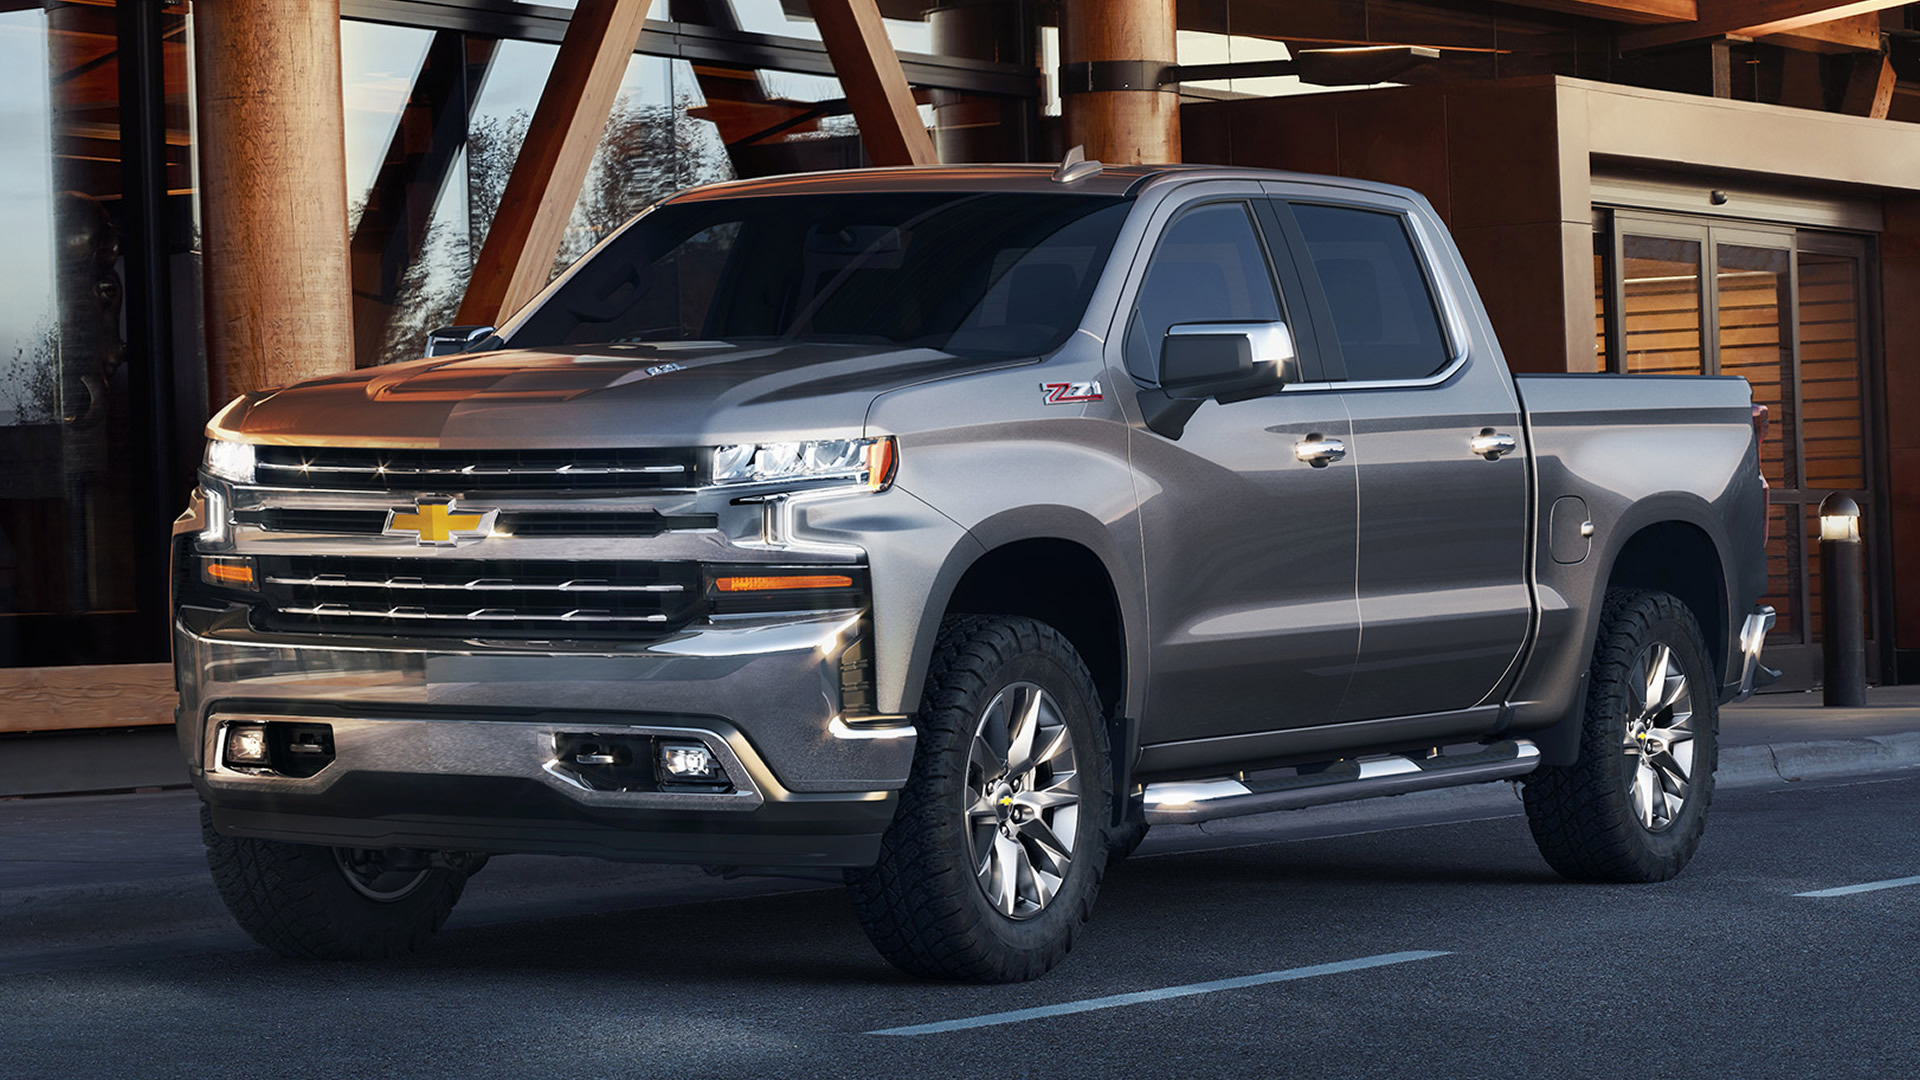 Chevrolet Silverado Z71 Crew Cab (2019) Wallpapers and HD ...